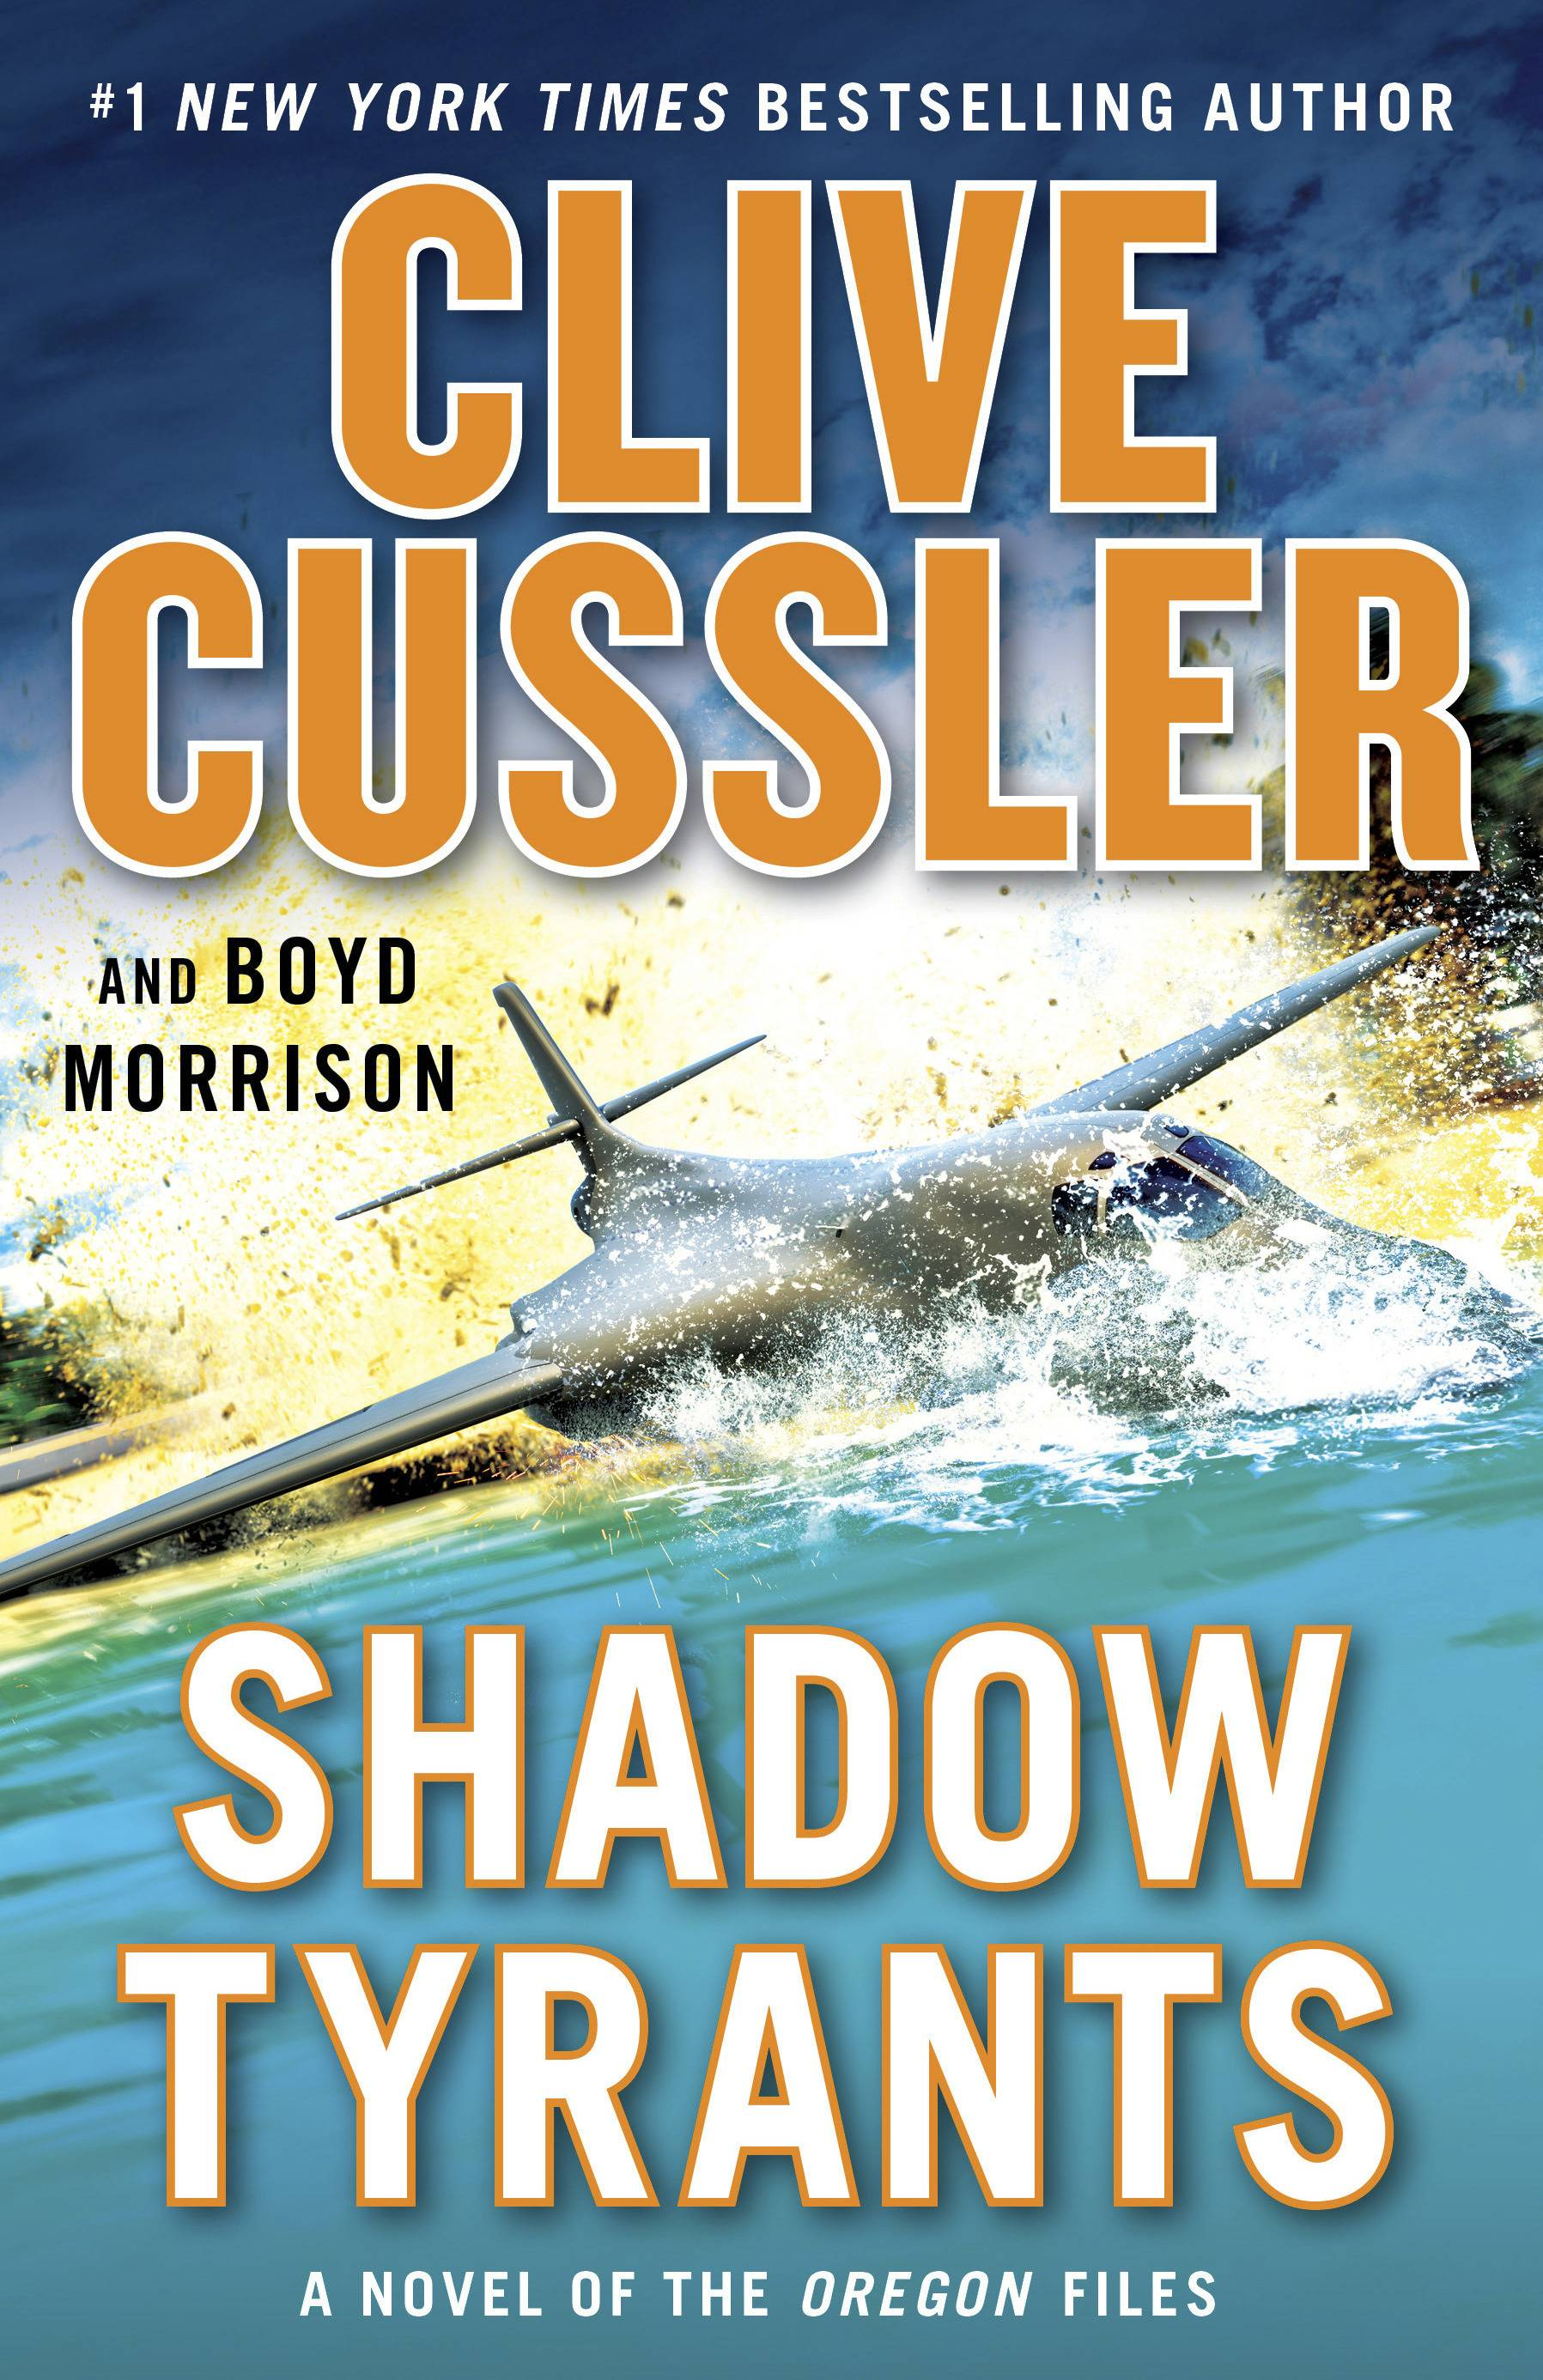 """Shadow Tyrants,"" a novel by Clive Cussler and Boyd Morrison."